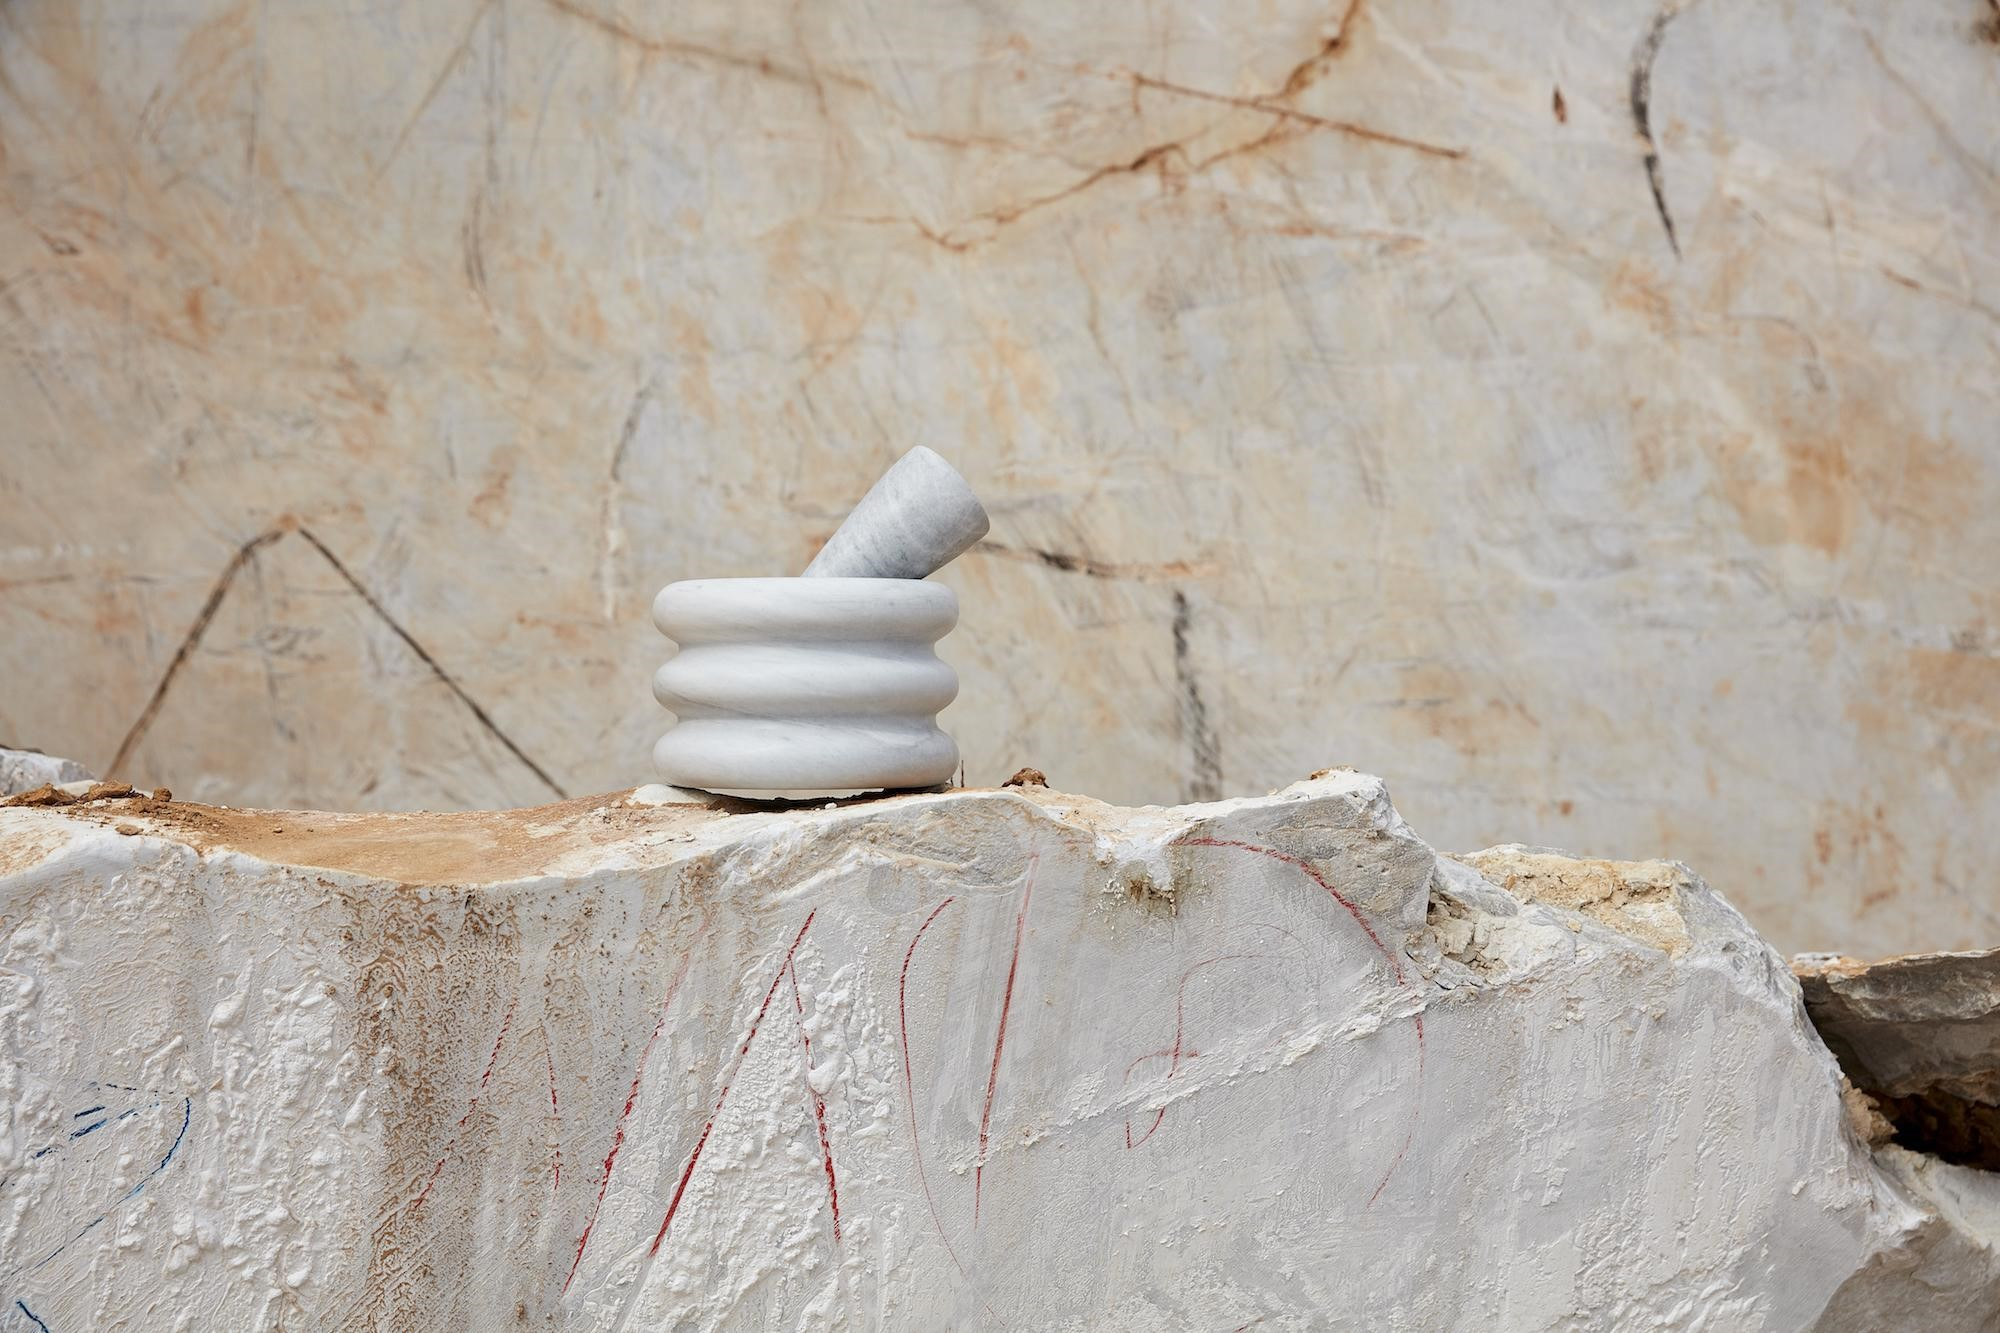 Exhibited In The Tdf Gallery, Rough Hewn Elba™ Plinths Quarried In Greece Are Contrasted With The Organ